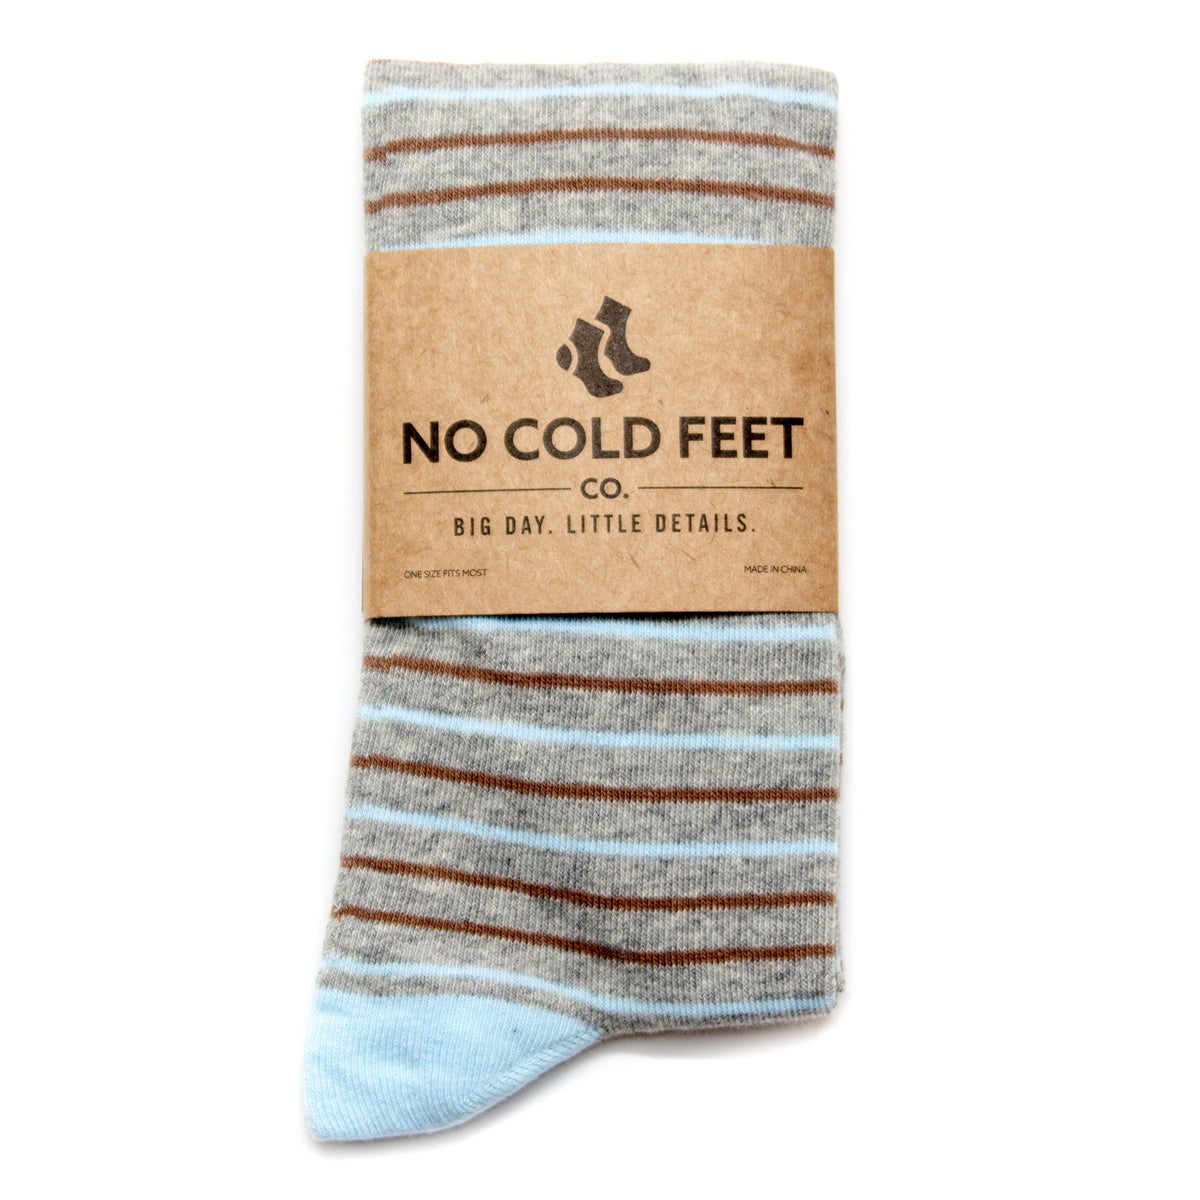 Black, Brown, and Grey Striped Groomsmen Socks | No Cold Feet